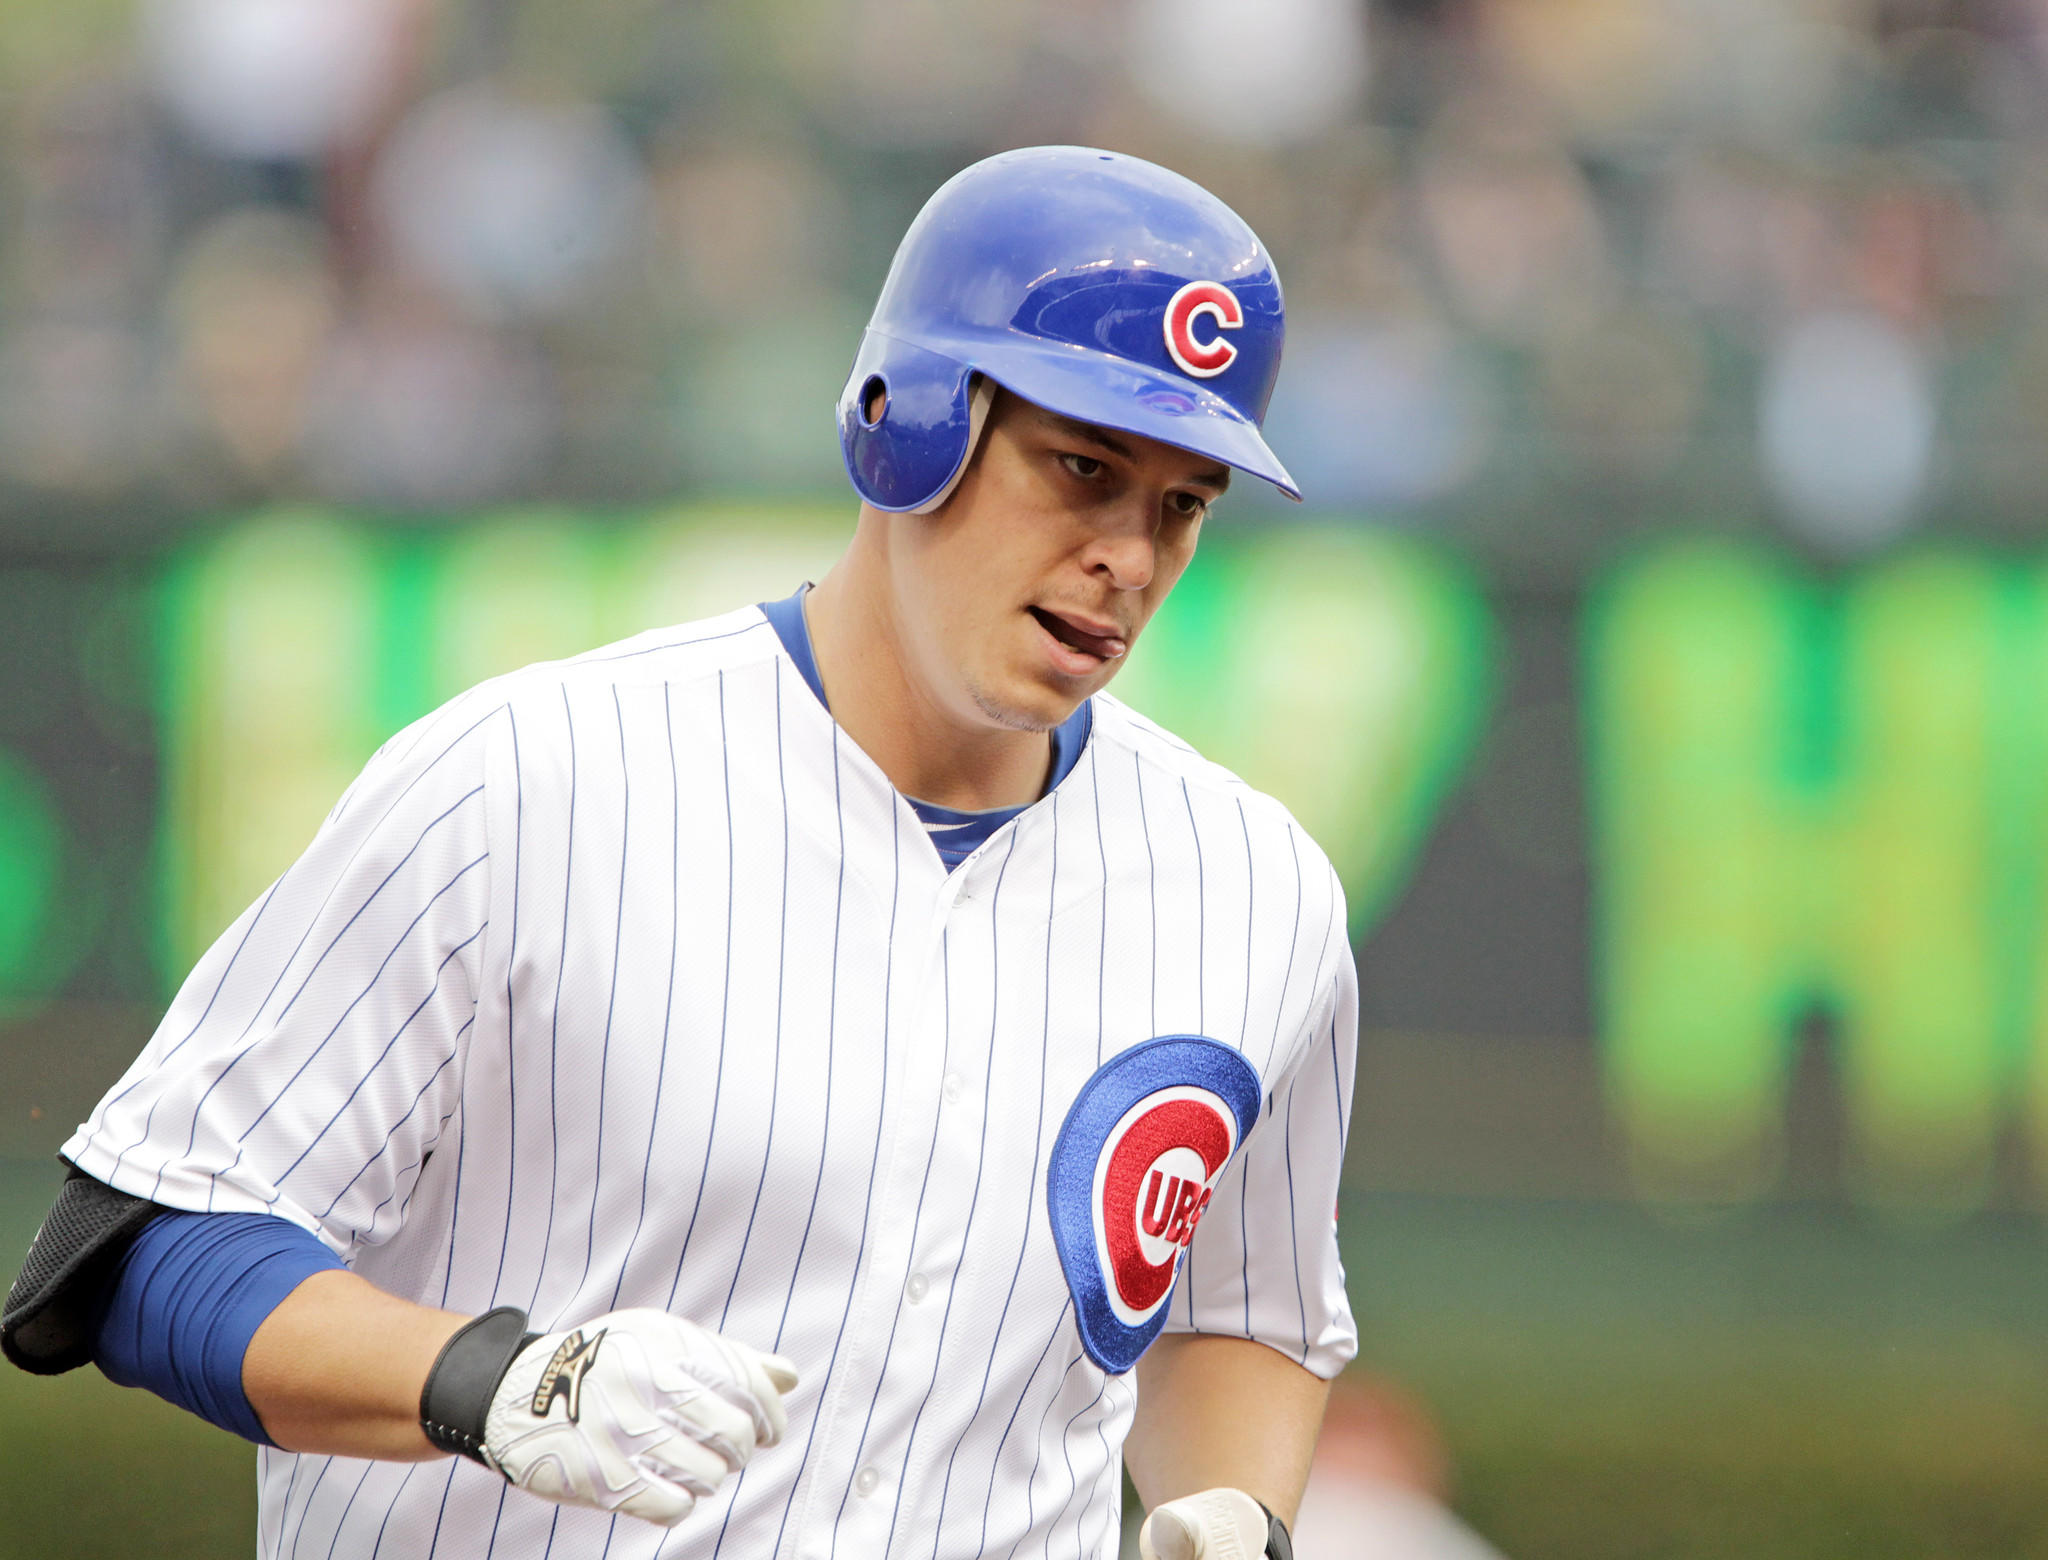 Bryan LaHair of the Cubs rounds the bases after hitting a home run on Oct. 3, 2012.